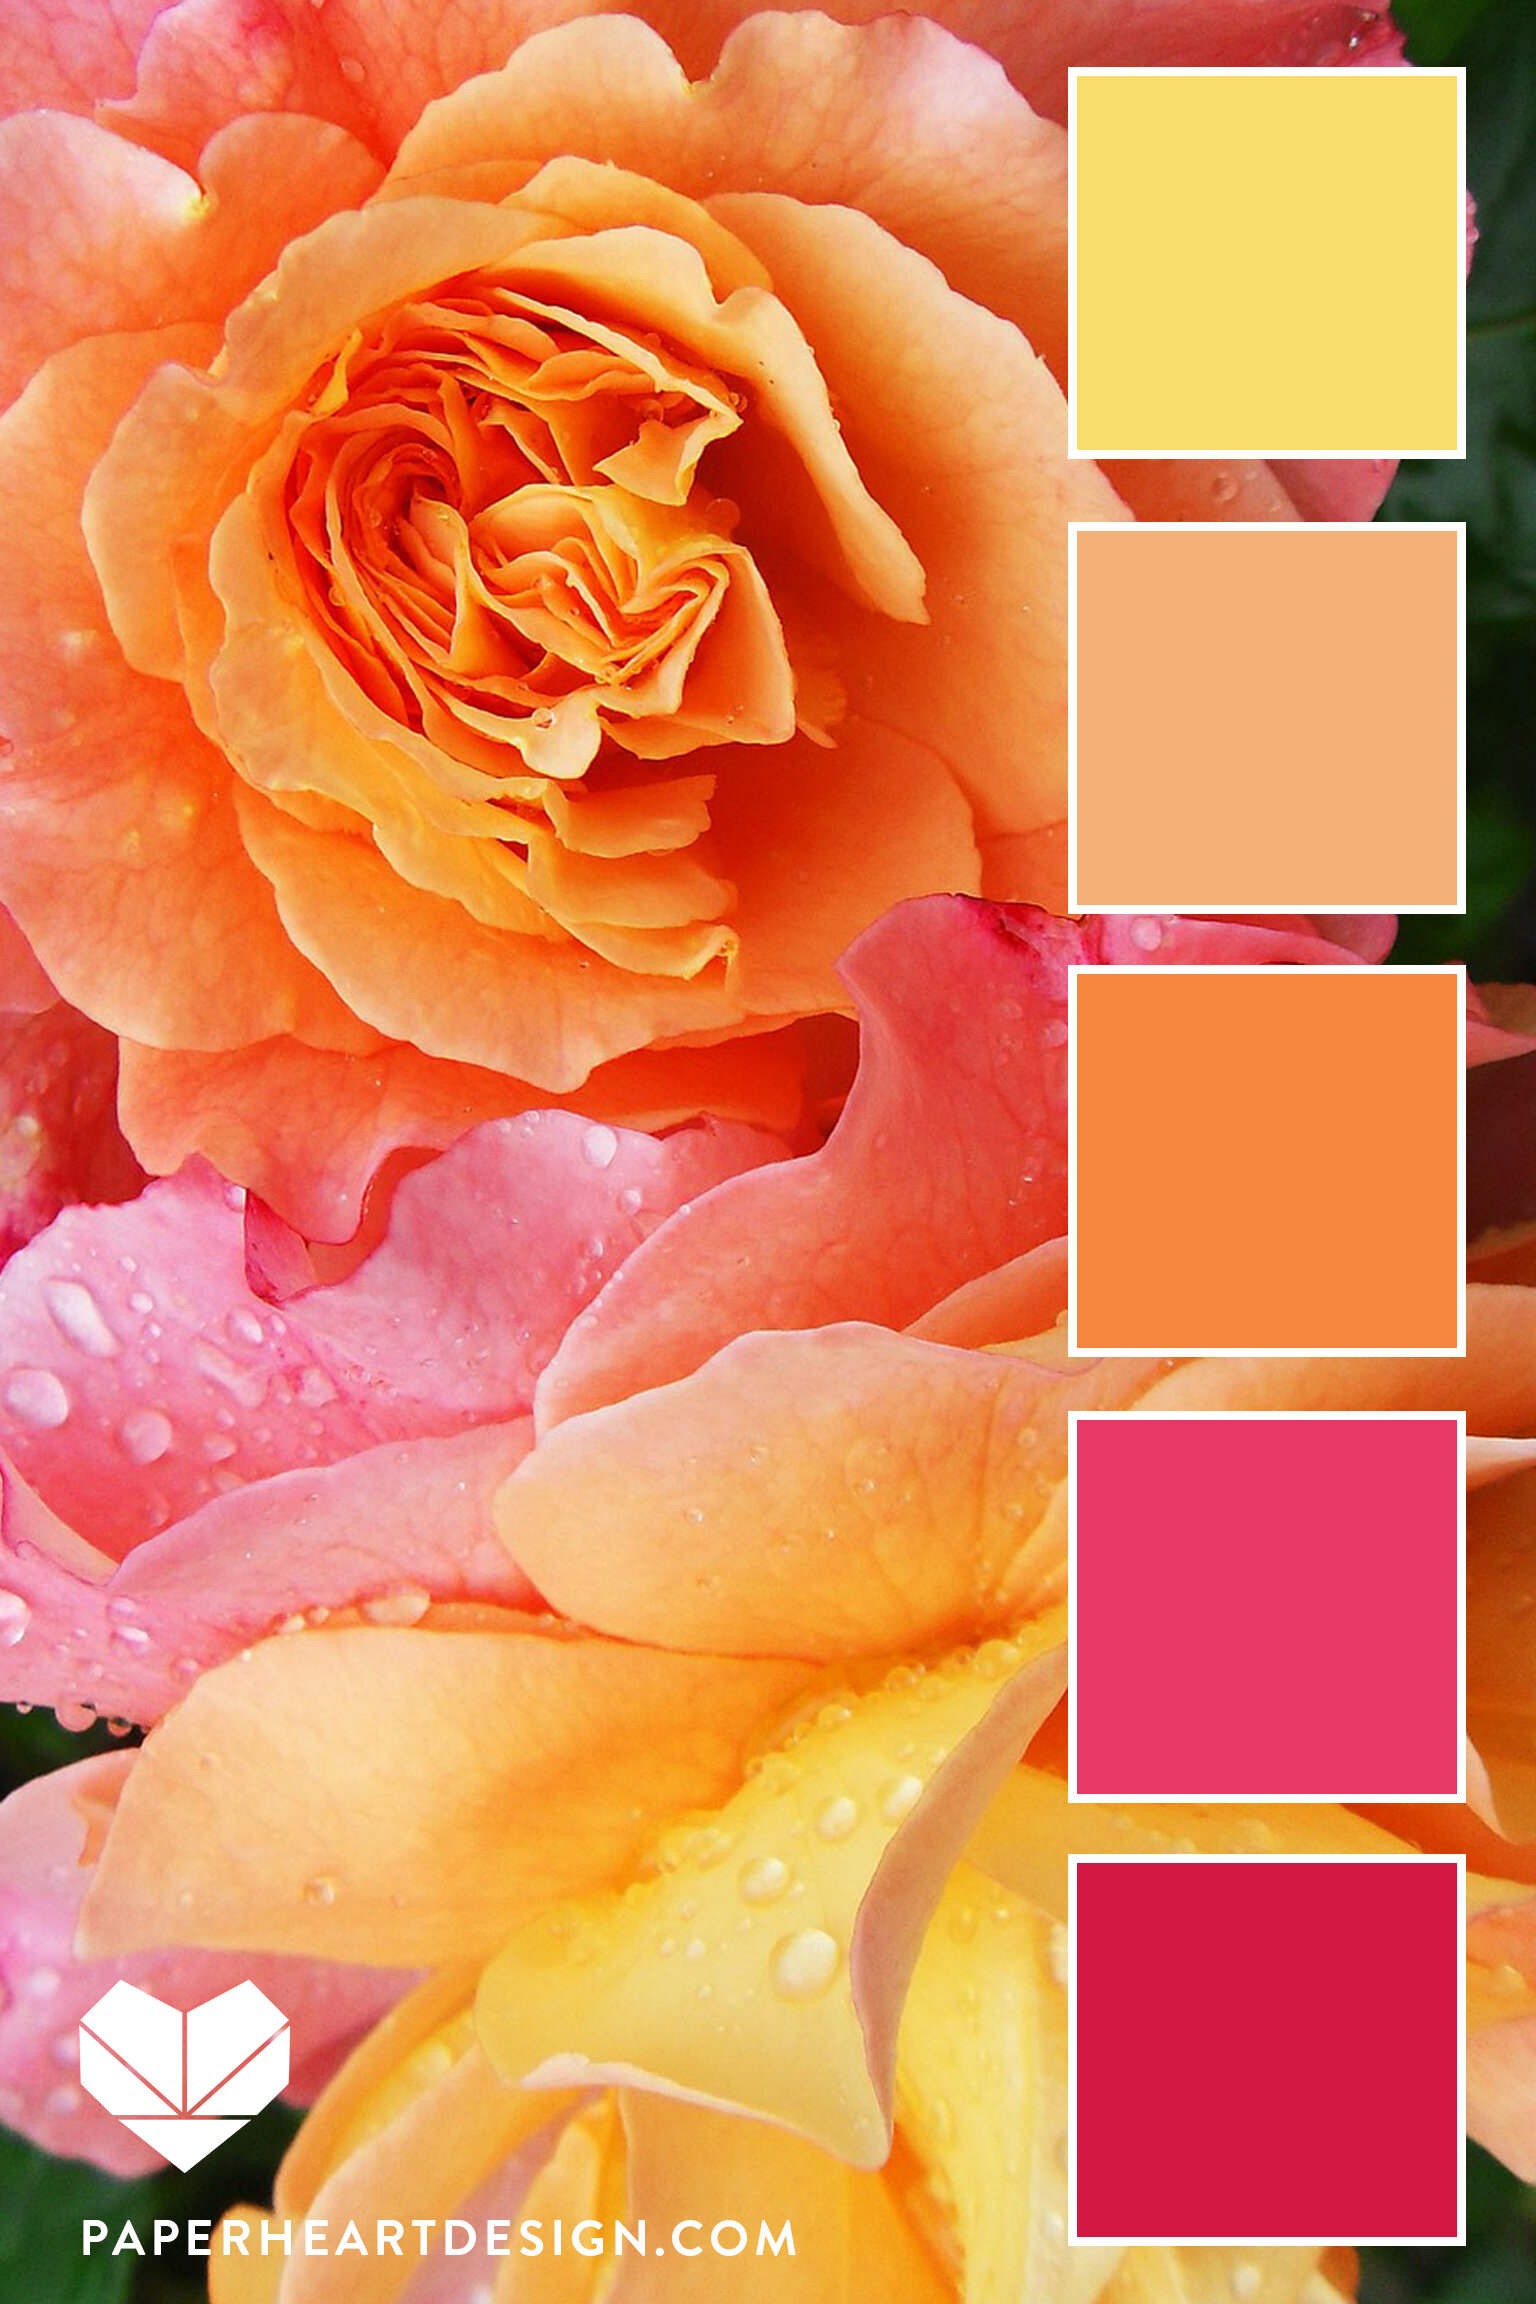 Pink, peach, orange and yellow are such a feminine and fun combo.